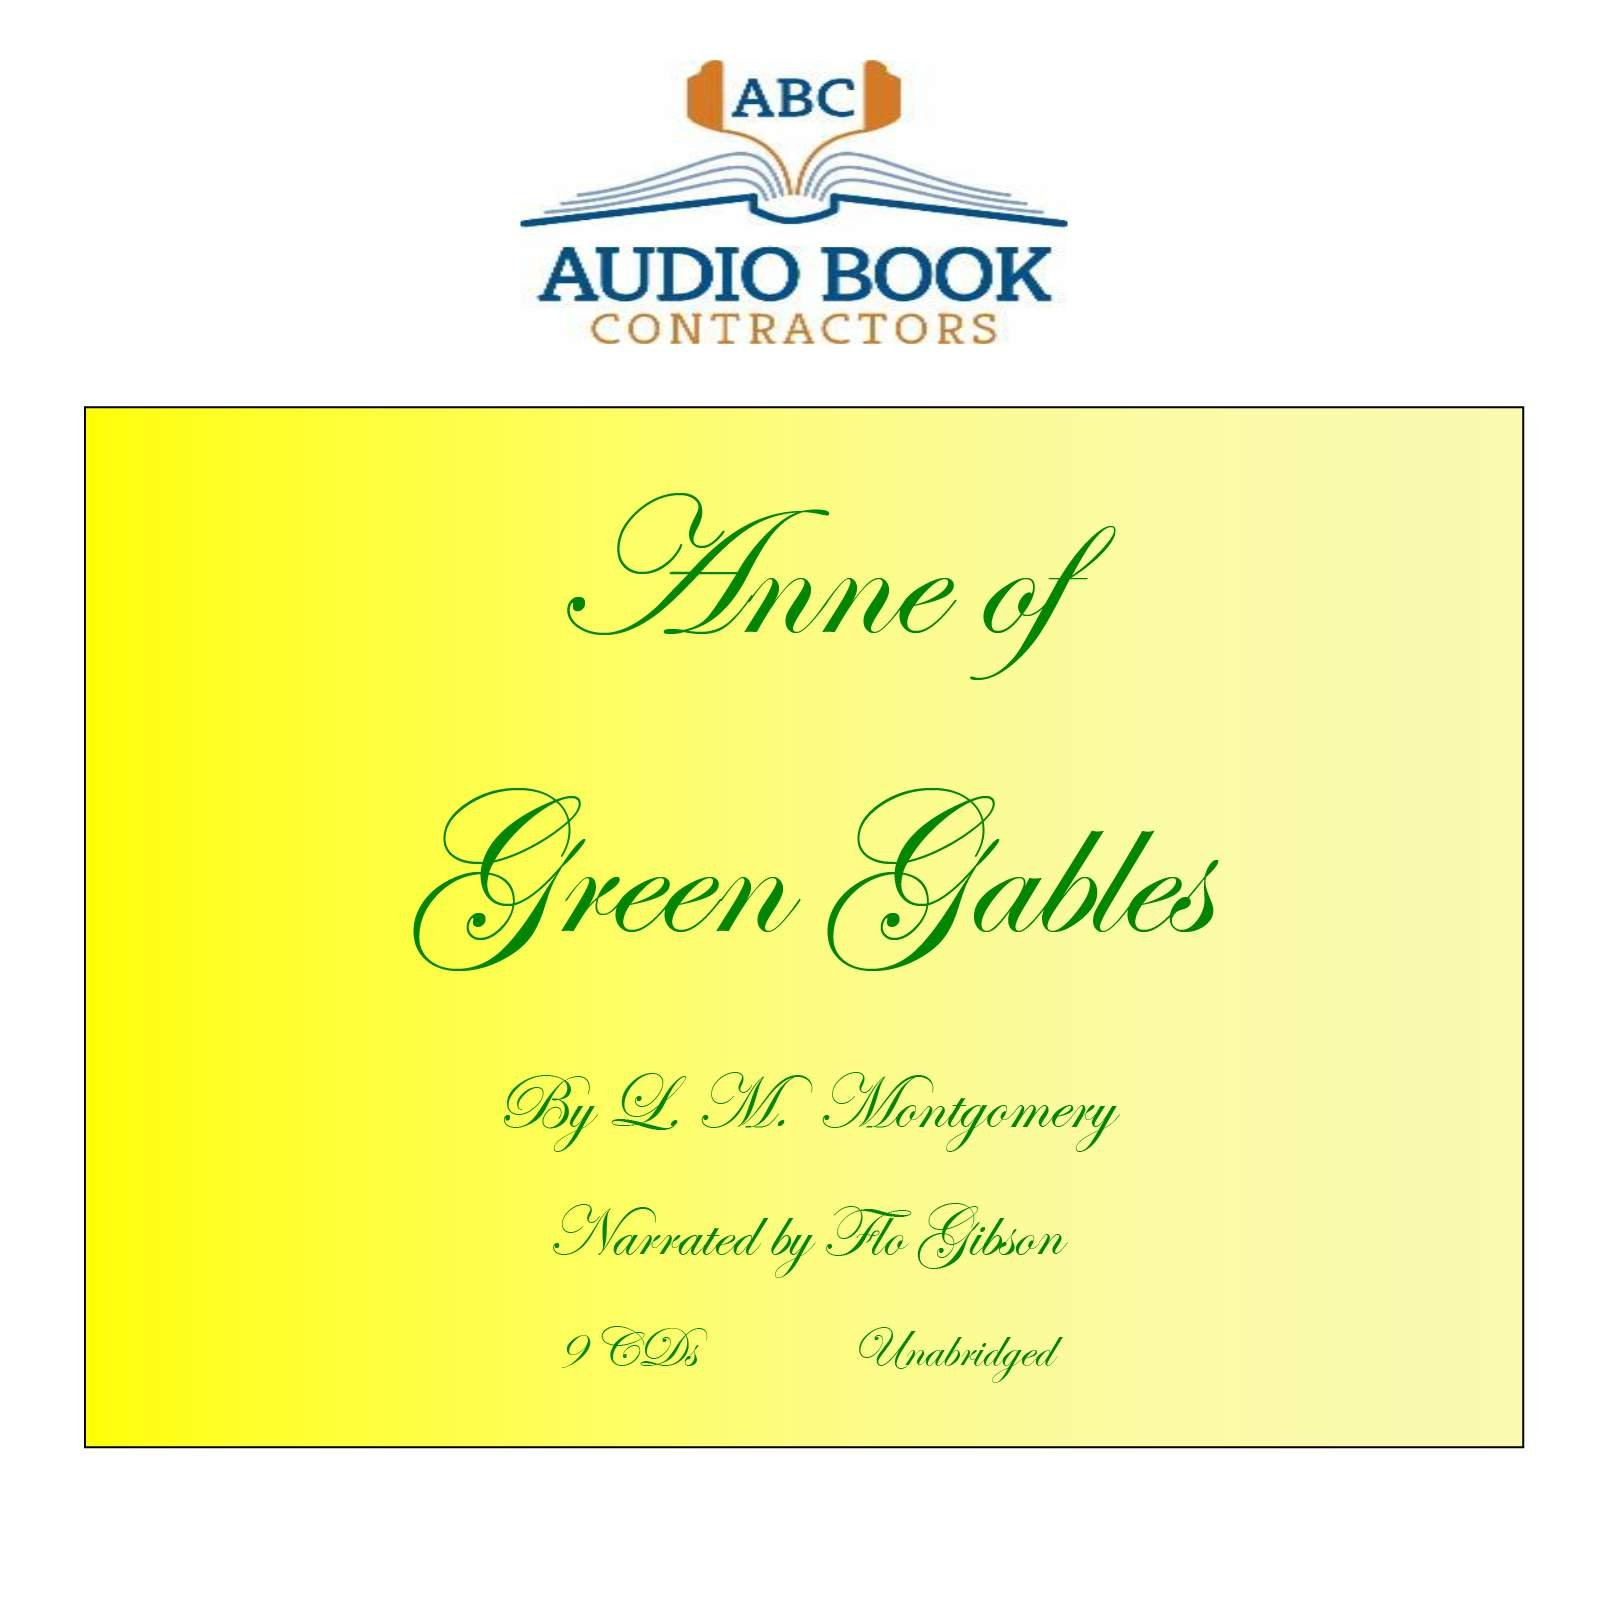 Anne of Green Gables (Classic Books on CD Collection) [UNABRIDGED] pdf